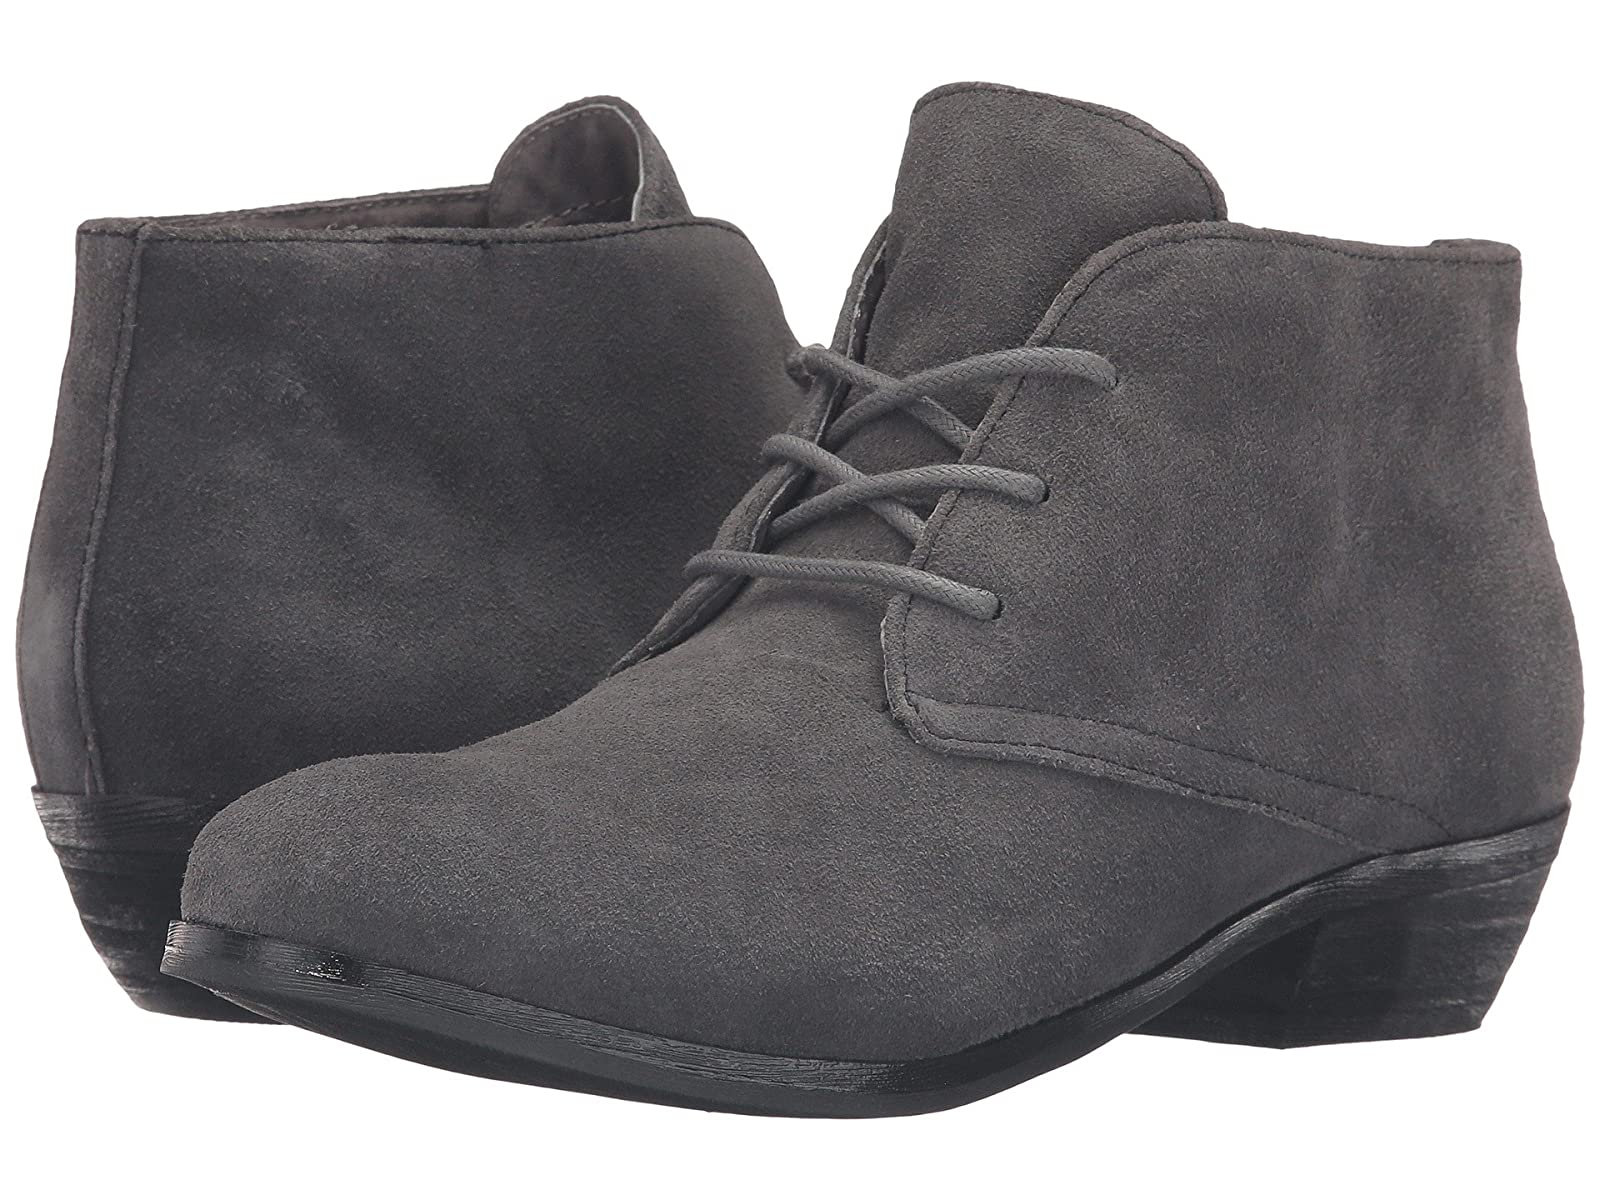 SoftWalk RamseyEconomical and quality shoes